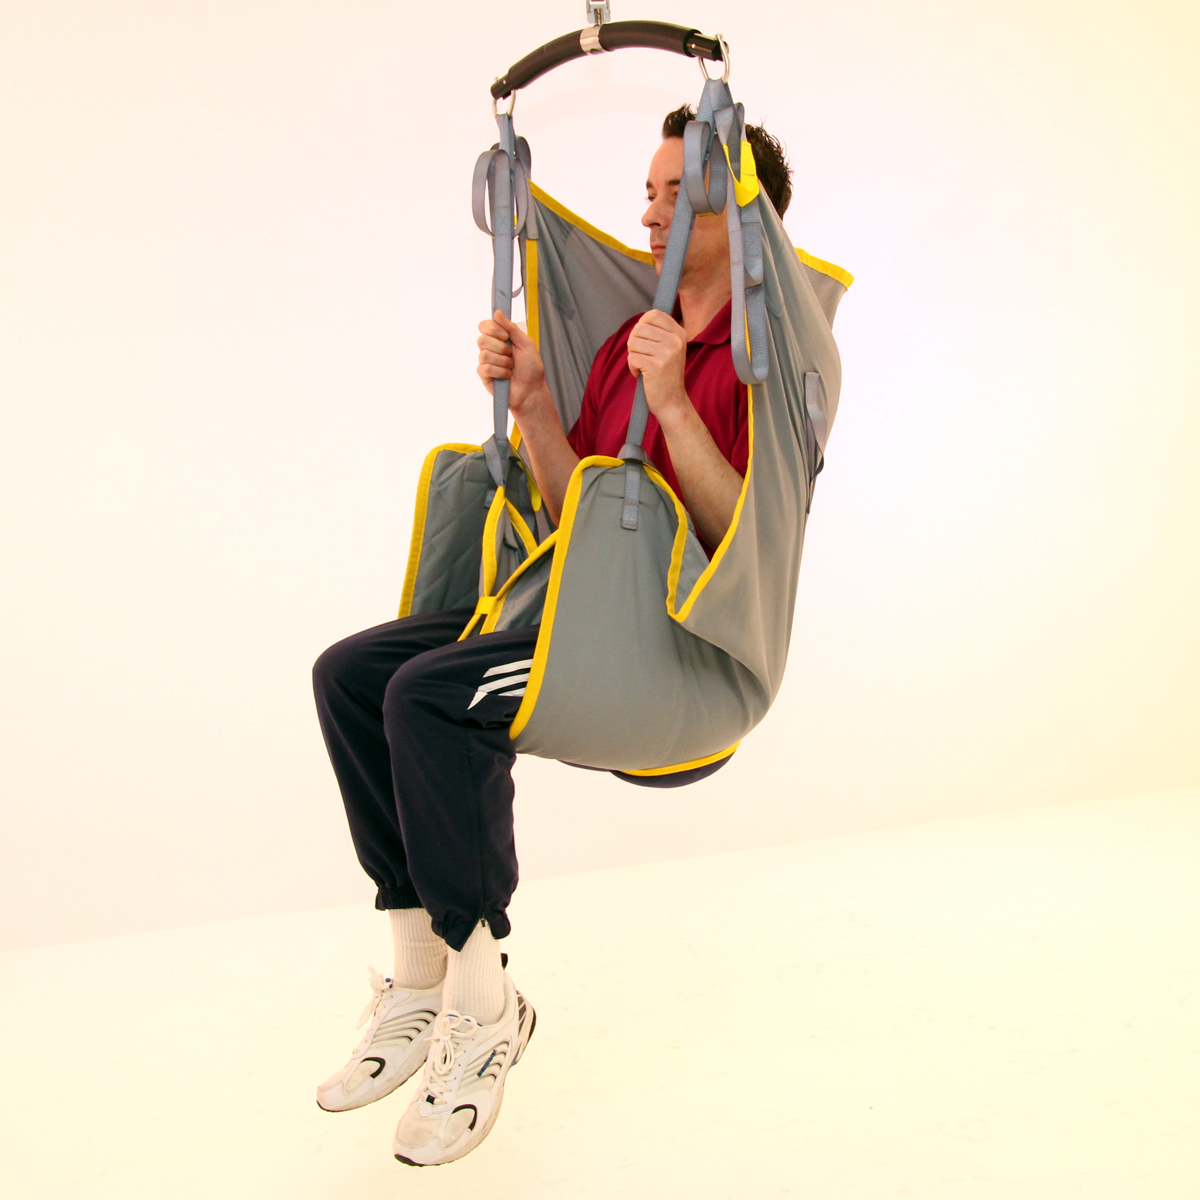 Fastfit Deluxe Poly Sling - Sm mall